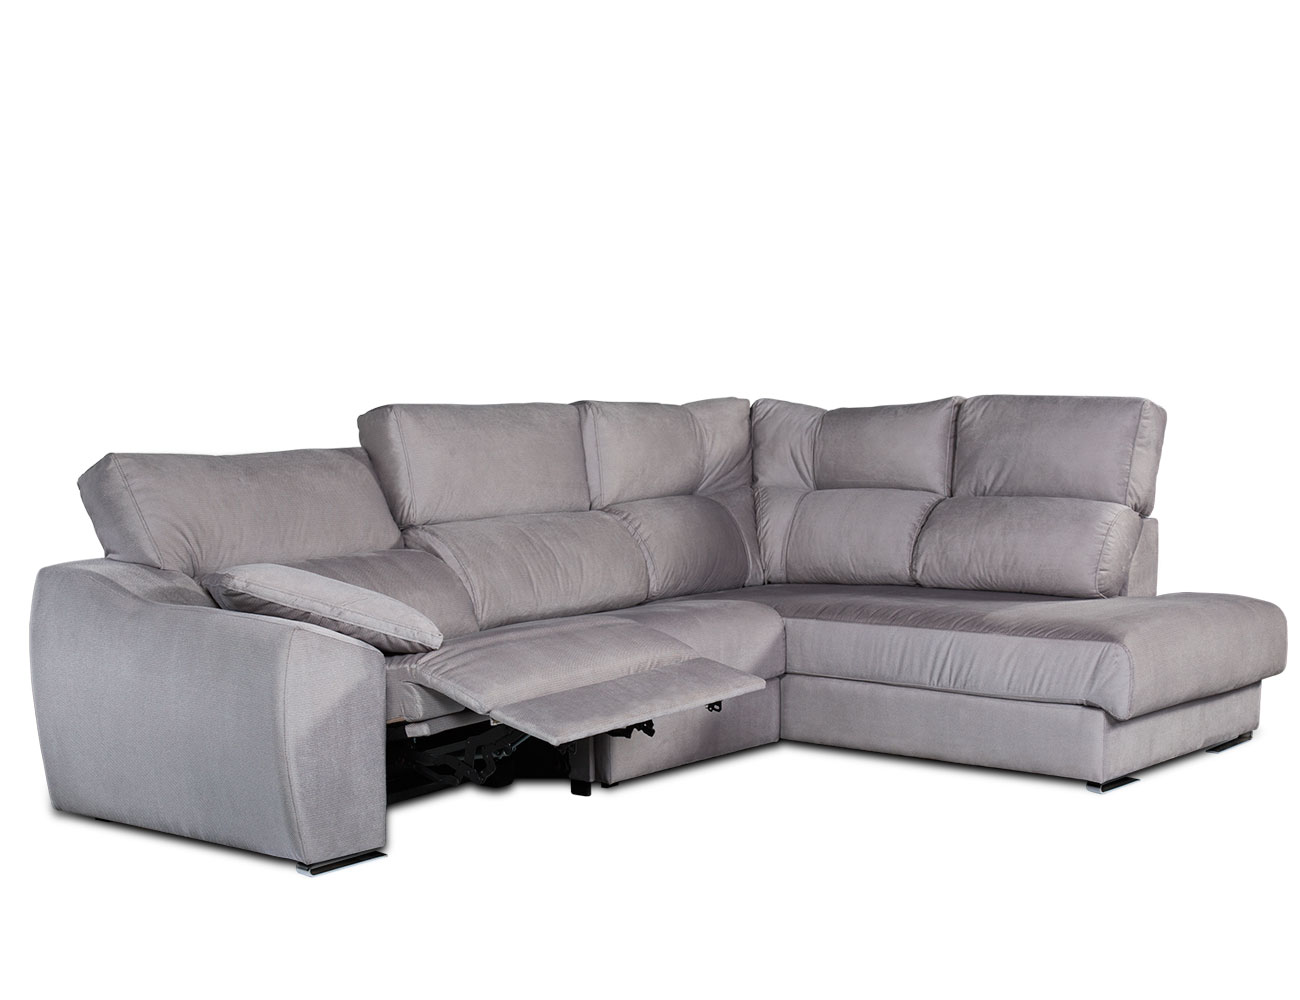 Sofa chaiselongue rincon electrico 21